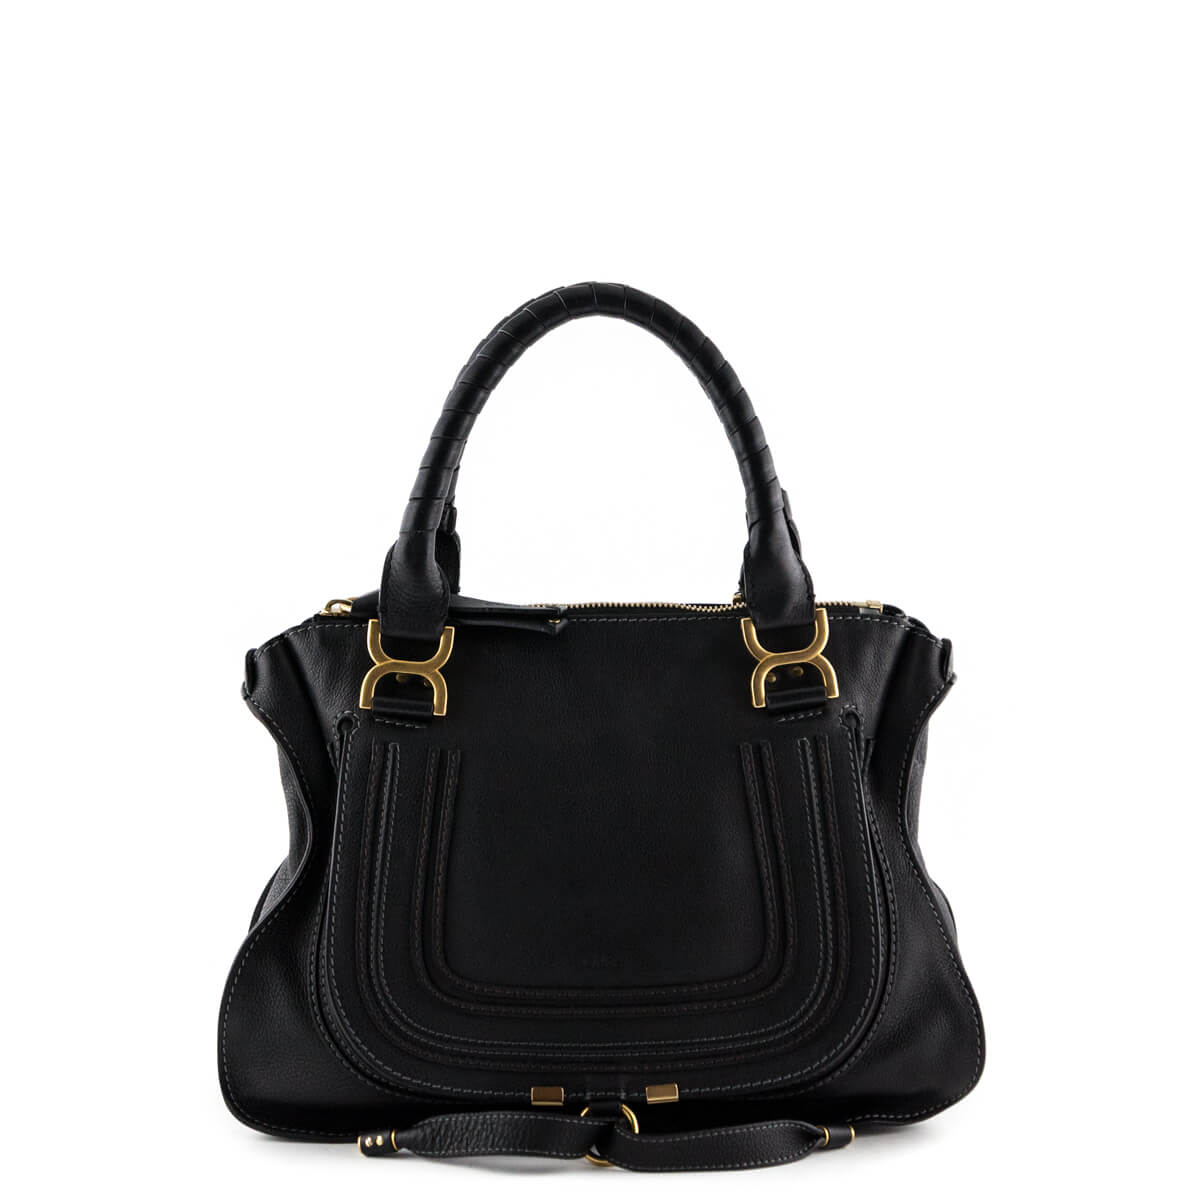 Marcie tote bag - Black Chlo</ototo></div>                                   <span></span>                               </div>             <div>                                     <div>                                             <div>                                                     <div>                                                             <div>                                                                     <div>                                                                             <div>                                                                                     <div>                                                                                             <div>                                                                                                     <div>                                                                                                             <div>                                                                                                                     <div>                                                                                                                             <ul>                                                                                                                                     <li>                                                                     <a href=